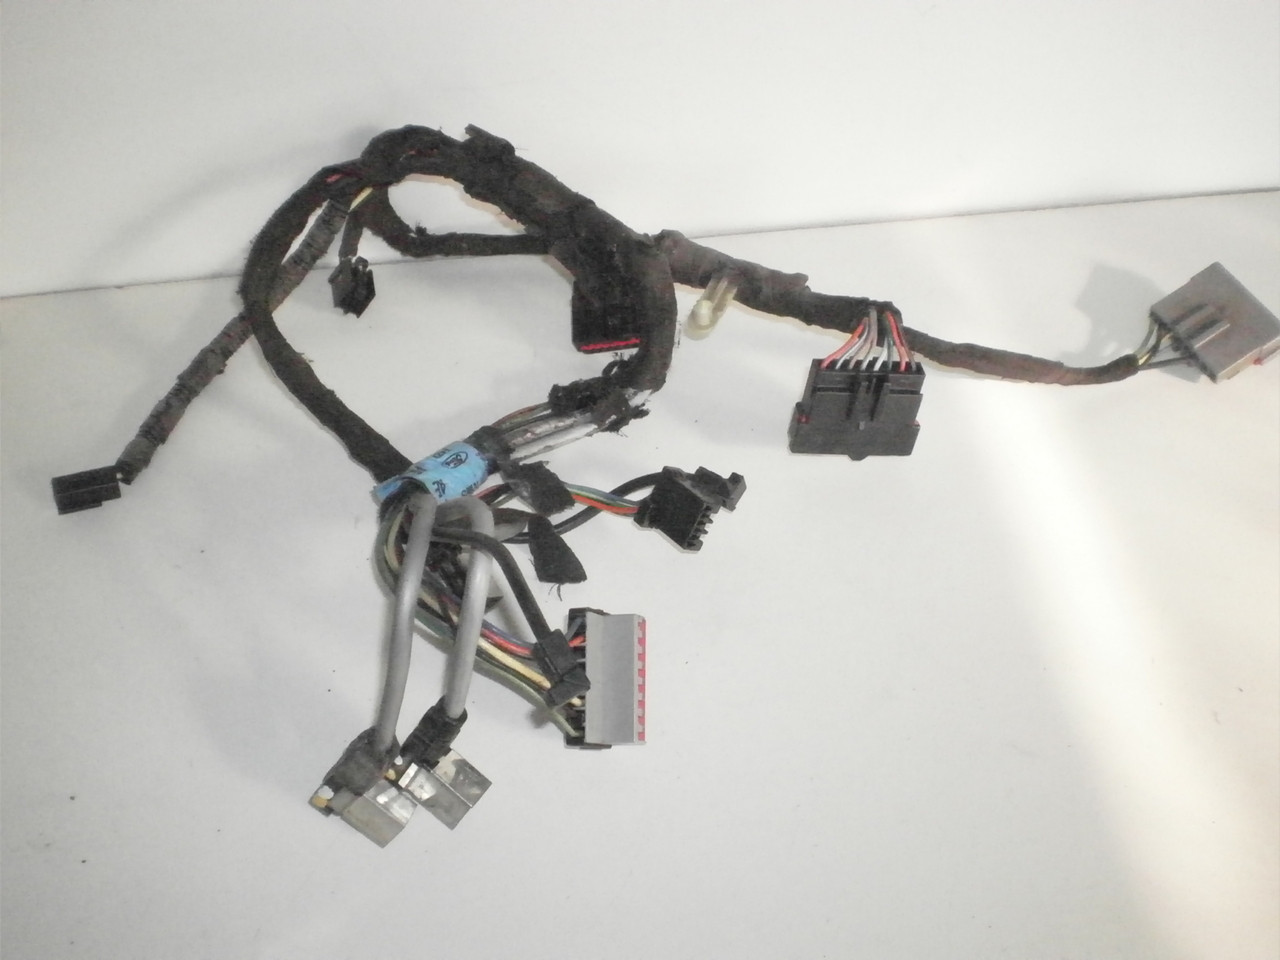 1994 2004 Ford Mustang Rear Mach 460 Amps Amplifiers Sterio 2001 Wiring Harness Image 1